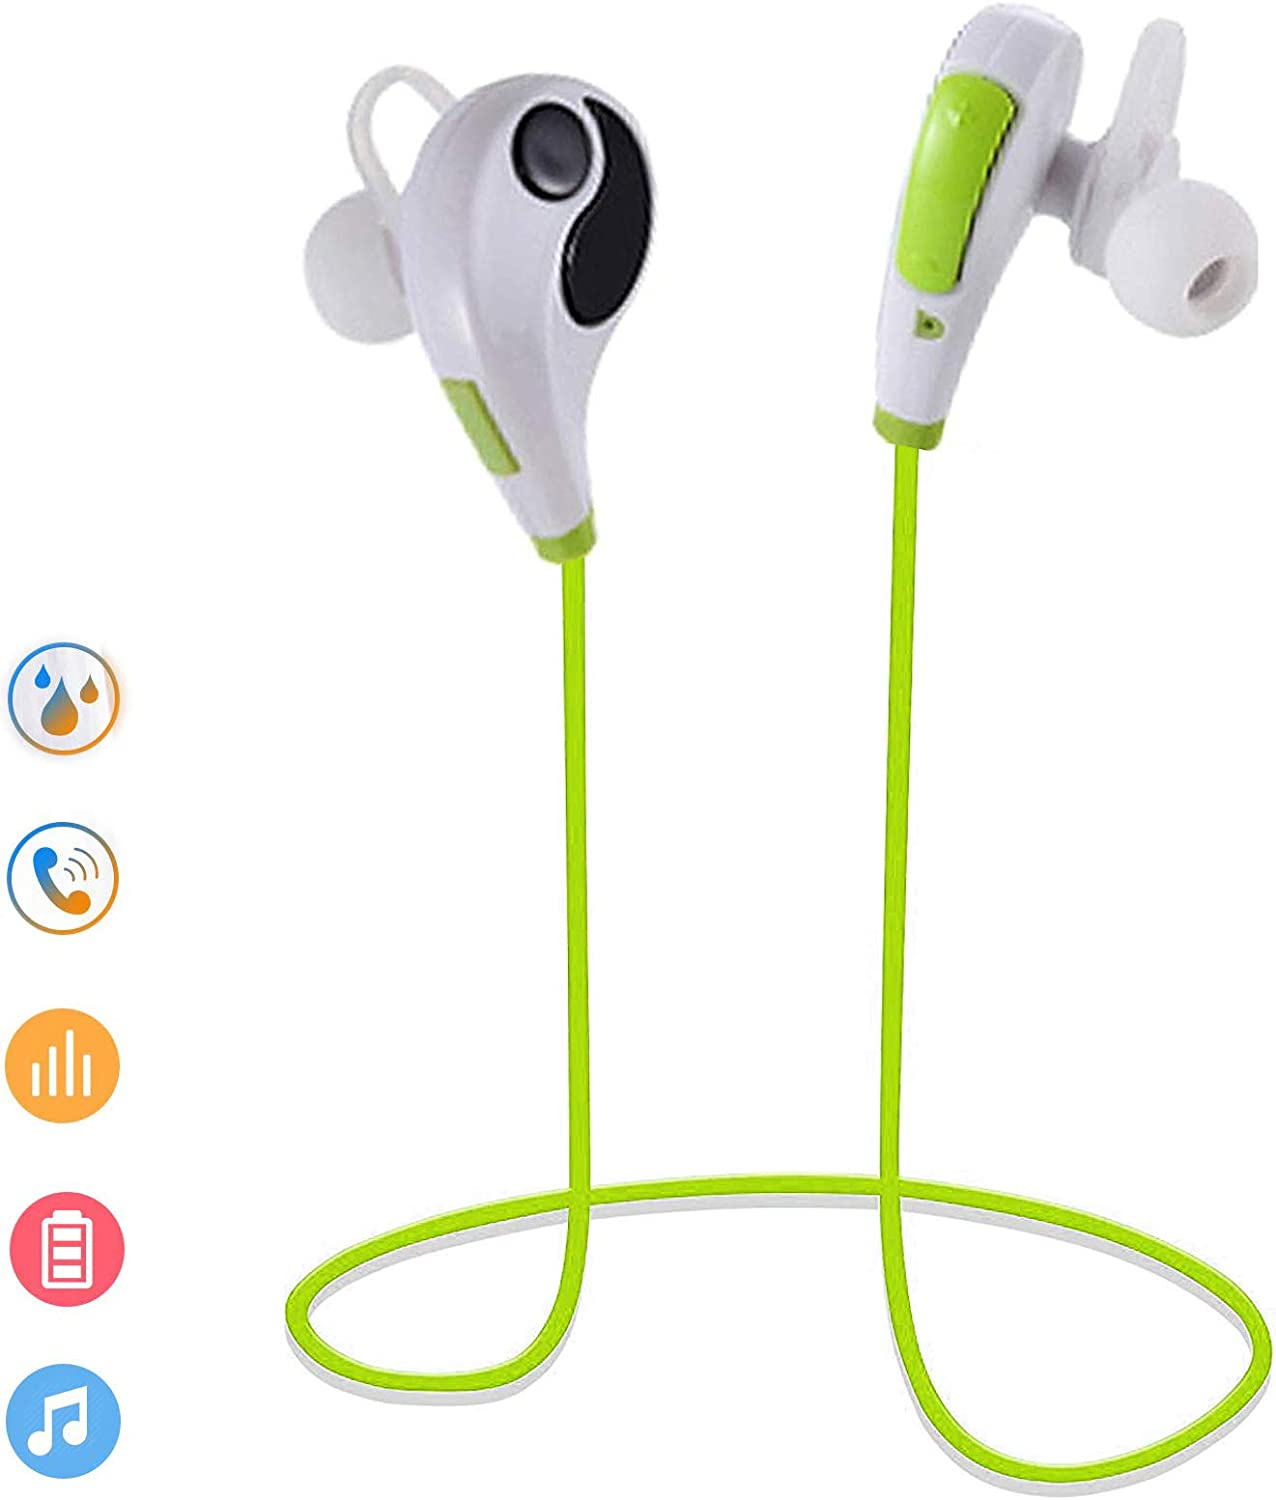 Bluetooth Headset Wireless Stereo Headphone in Ear Earbuds Long Talking Time Earphone Handsfree Call Microphone for Cell Phones Samsung Galaxy S9 S8 S7 Edge S6 Note 9 8 Huawei Honor 20 Lg G6 G7